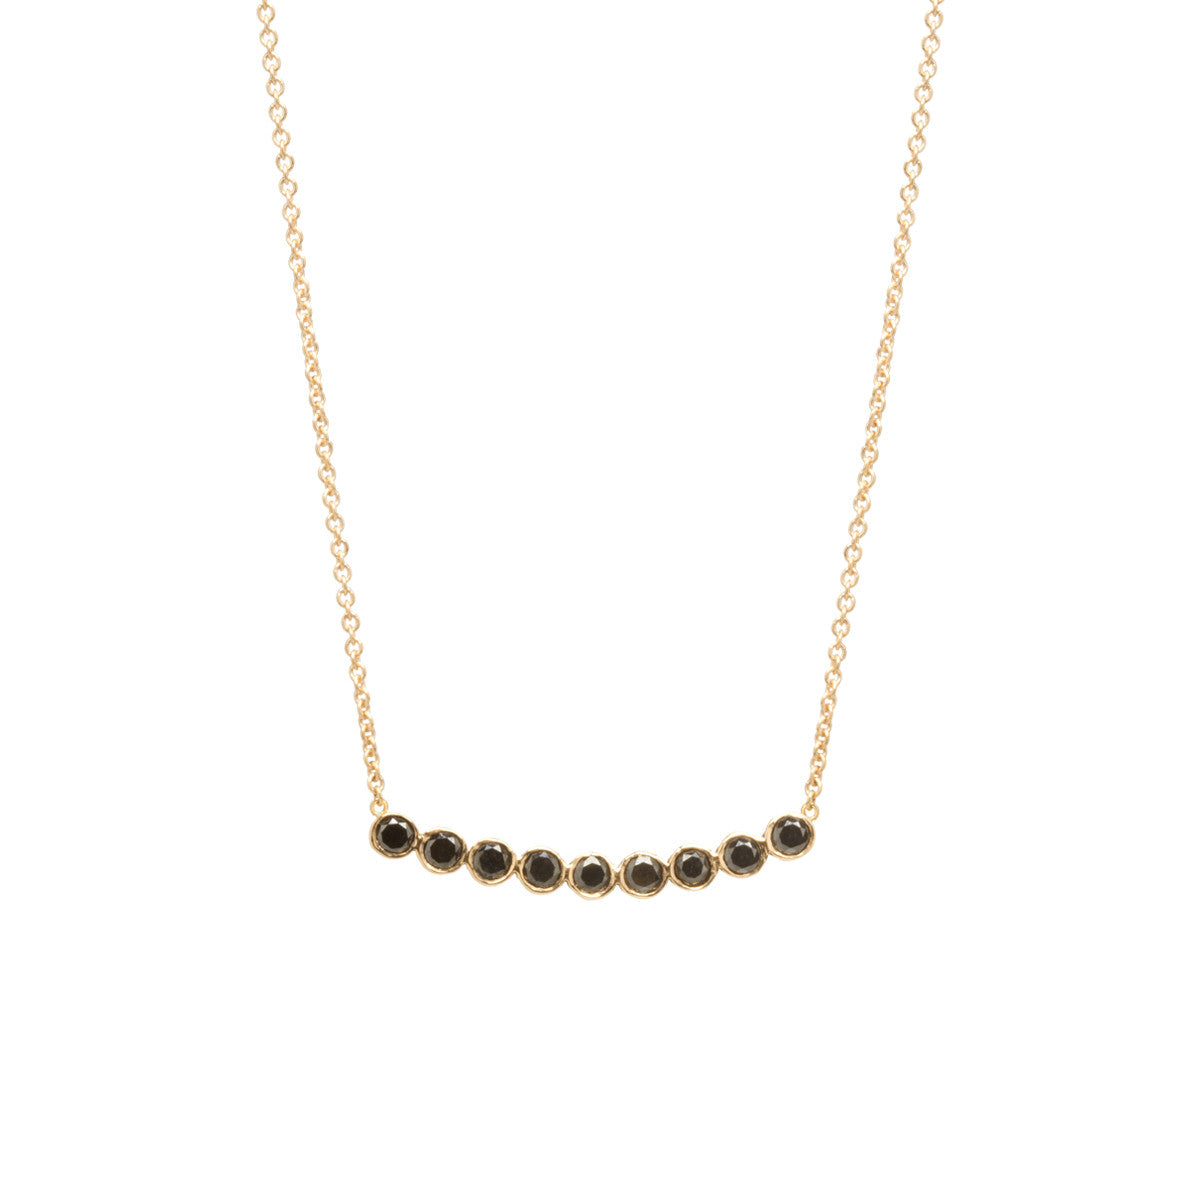 Zoë Chicco 14kt Yellow Gold 9 Black Diamond Bezel Set Necklace